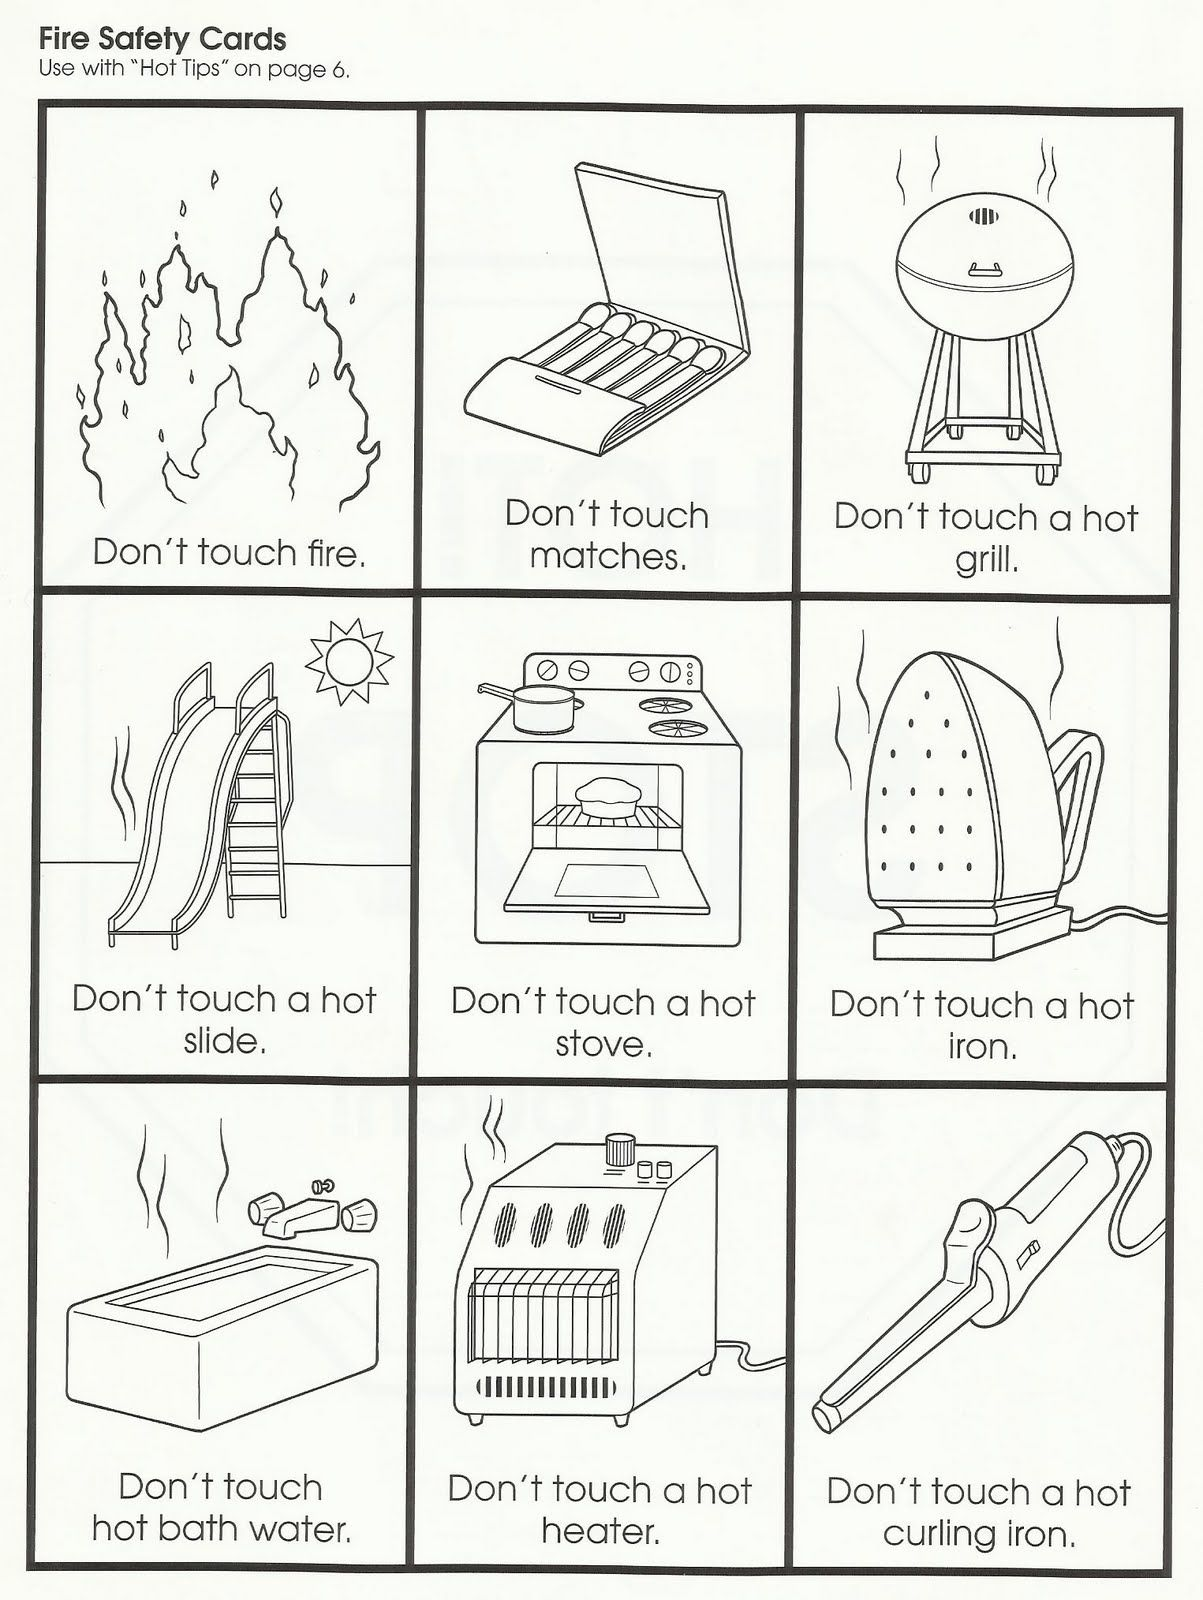 Squish Preschool Ideas: Fire Safety | Fall | Pinterest | Fire ...